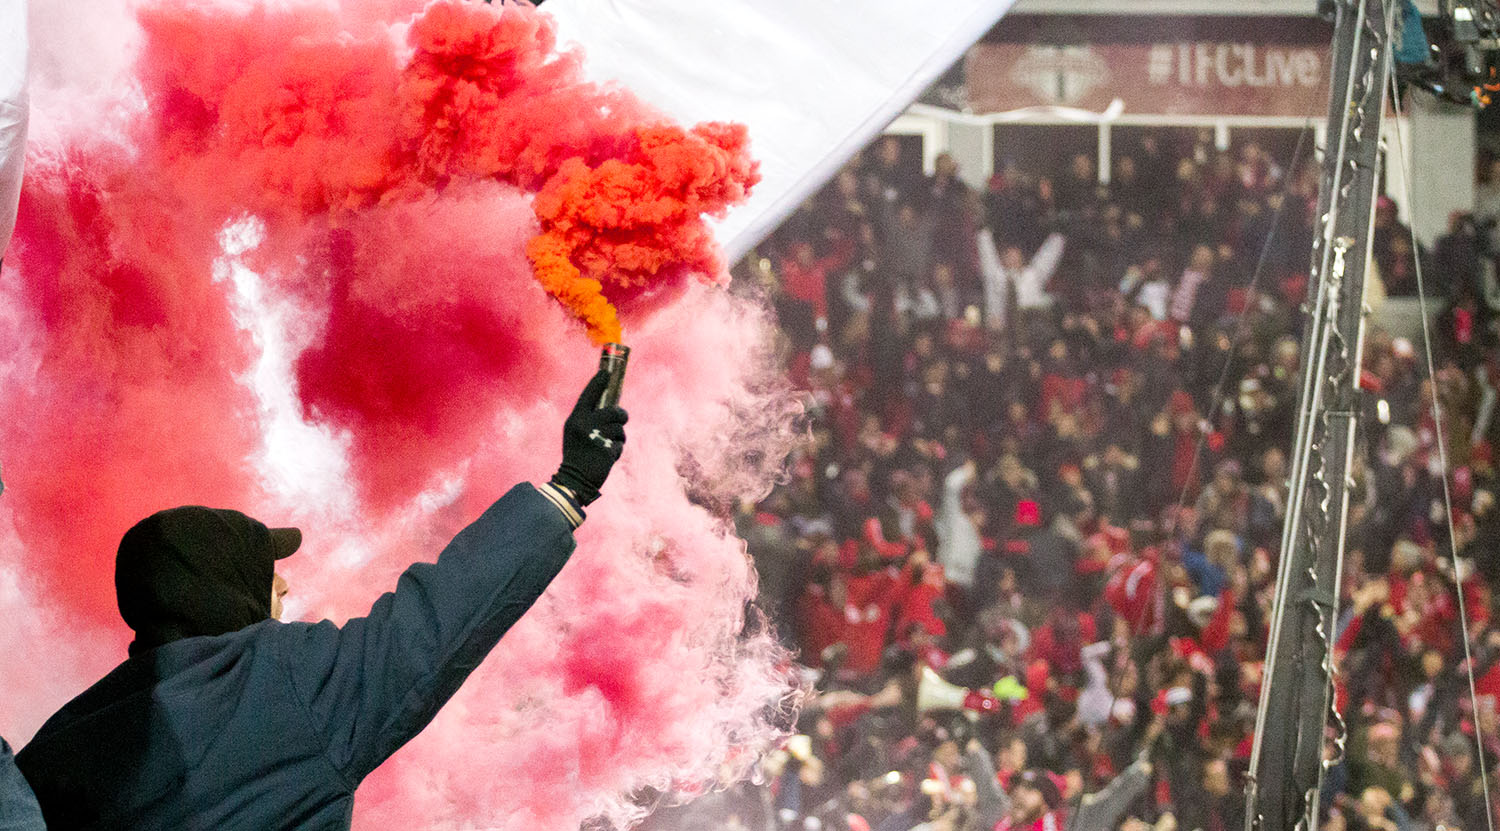 South End Supporter Groups light smoke up in celebration of the Jozy Altidore goal during the 2017 MLS Cup Playoffs at BMO Field in Toronto, Canada.Image by Dennis Marciniak of denMAR Media.